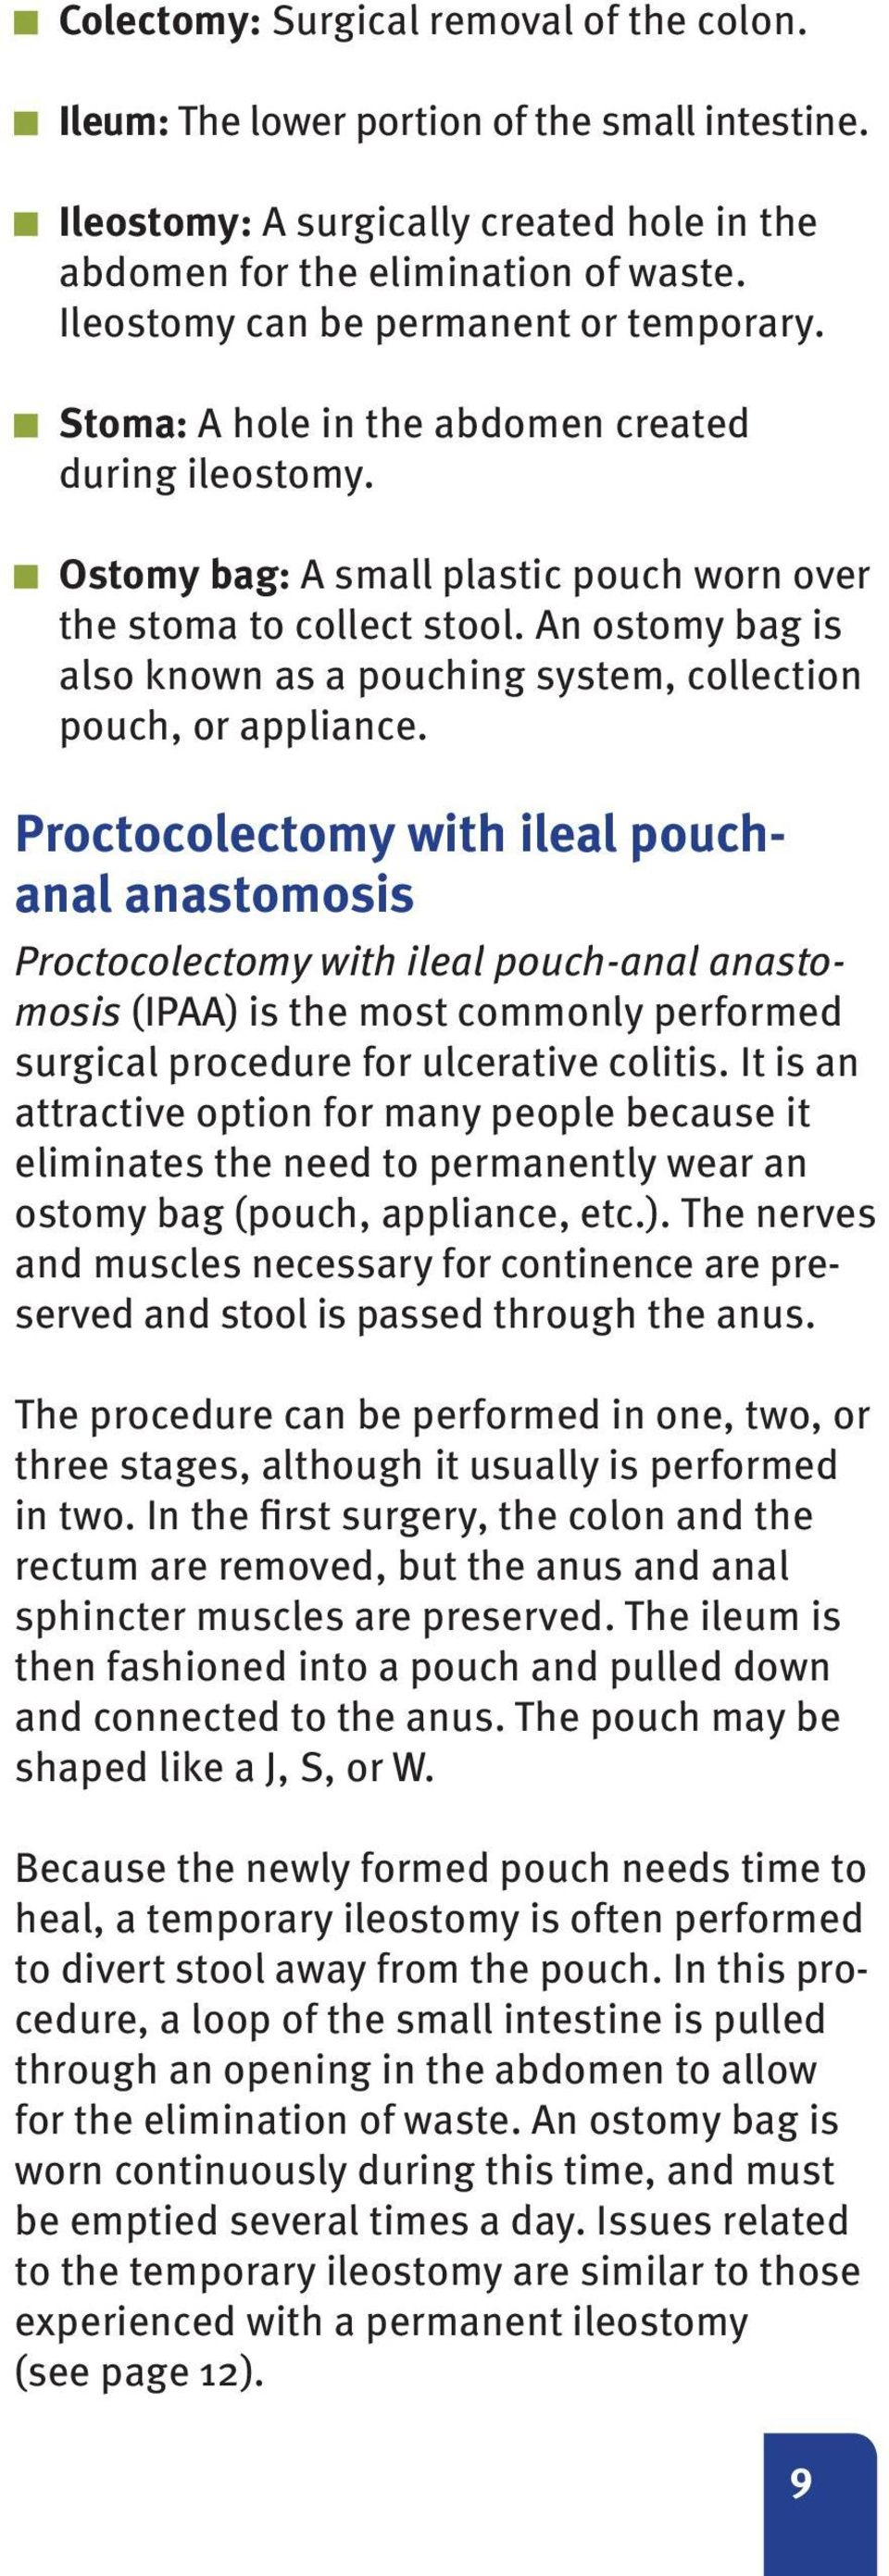 An ostomy bag is also known as a pouching system, collection pouch, or appliance.